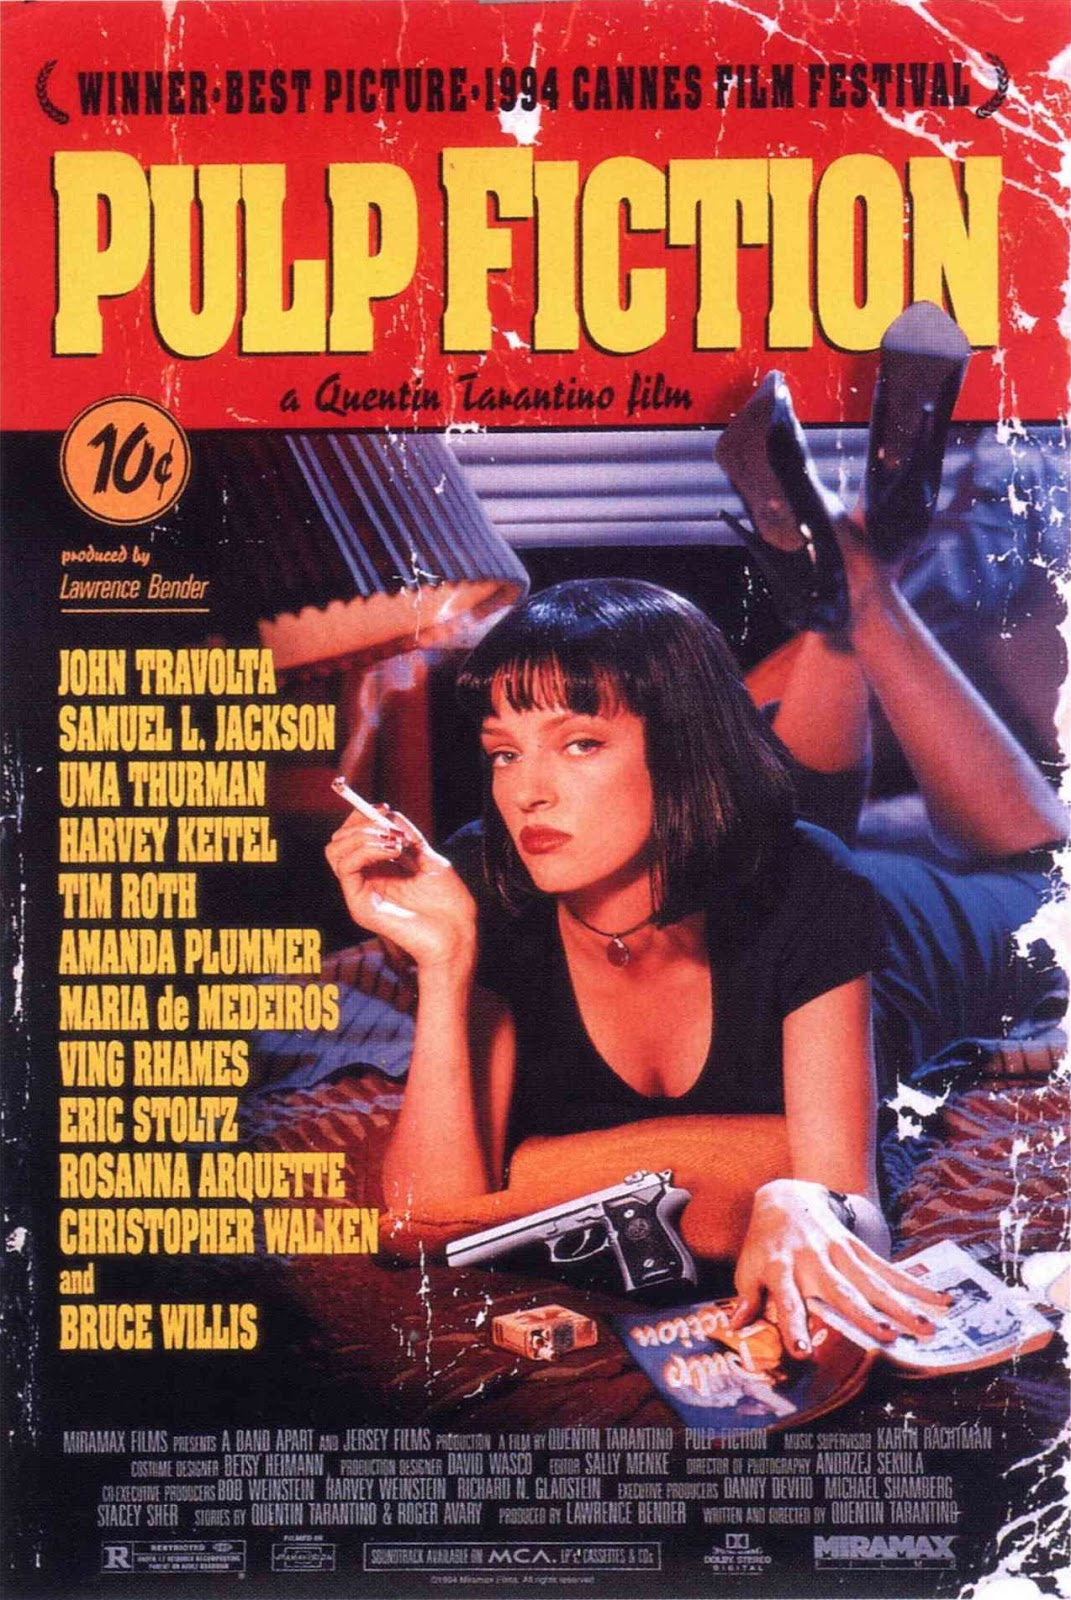 The theatrical release poster for Pulp Fiction. It is designed to look like an old pulp magazine cover and it depicts Uma Thurman lying on a bed with a cigarette in her hand.